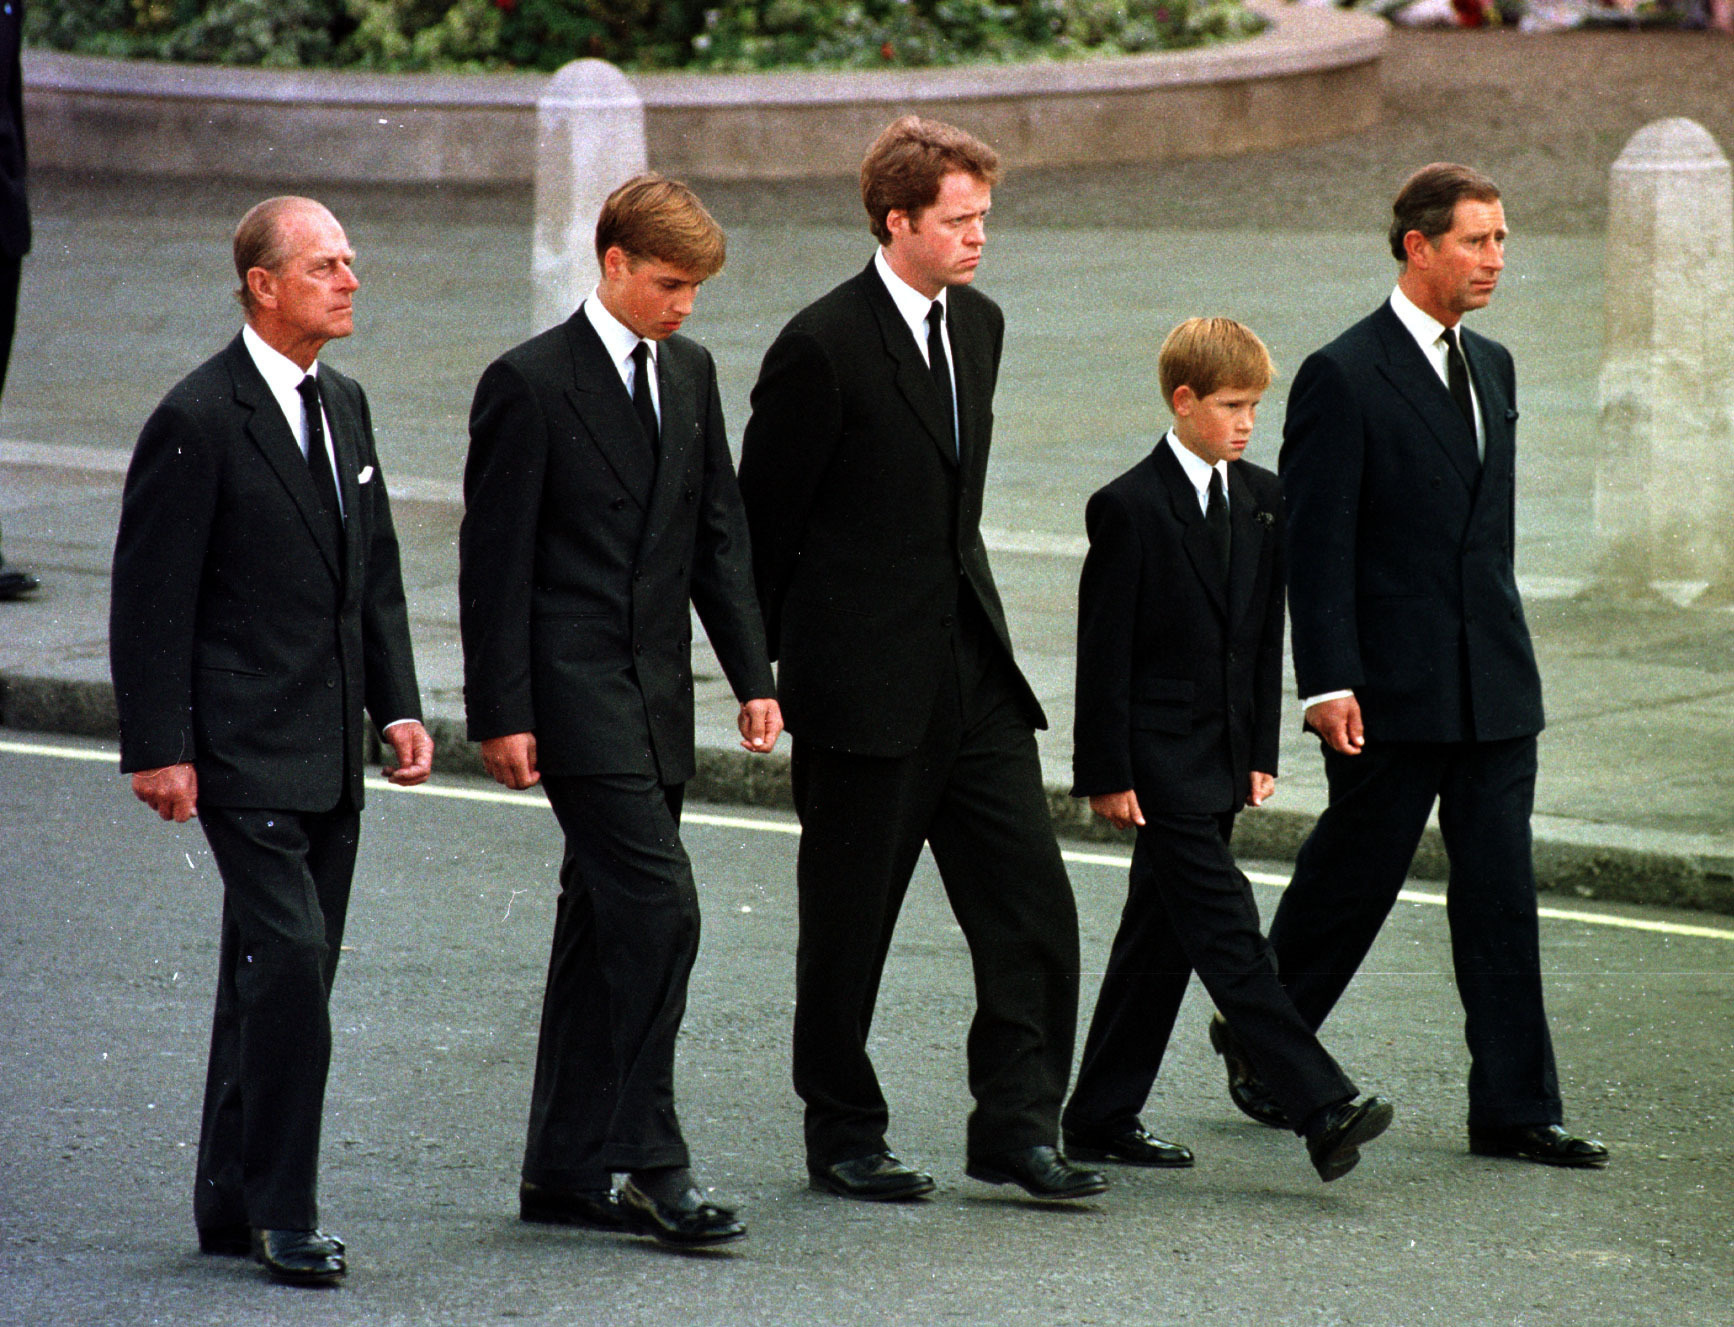 prince harry with royal family at funeral of princess diana